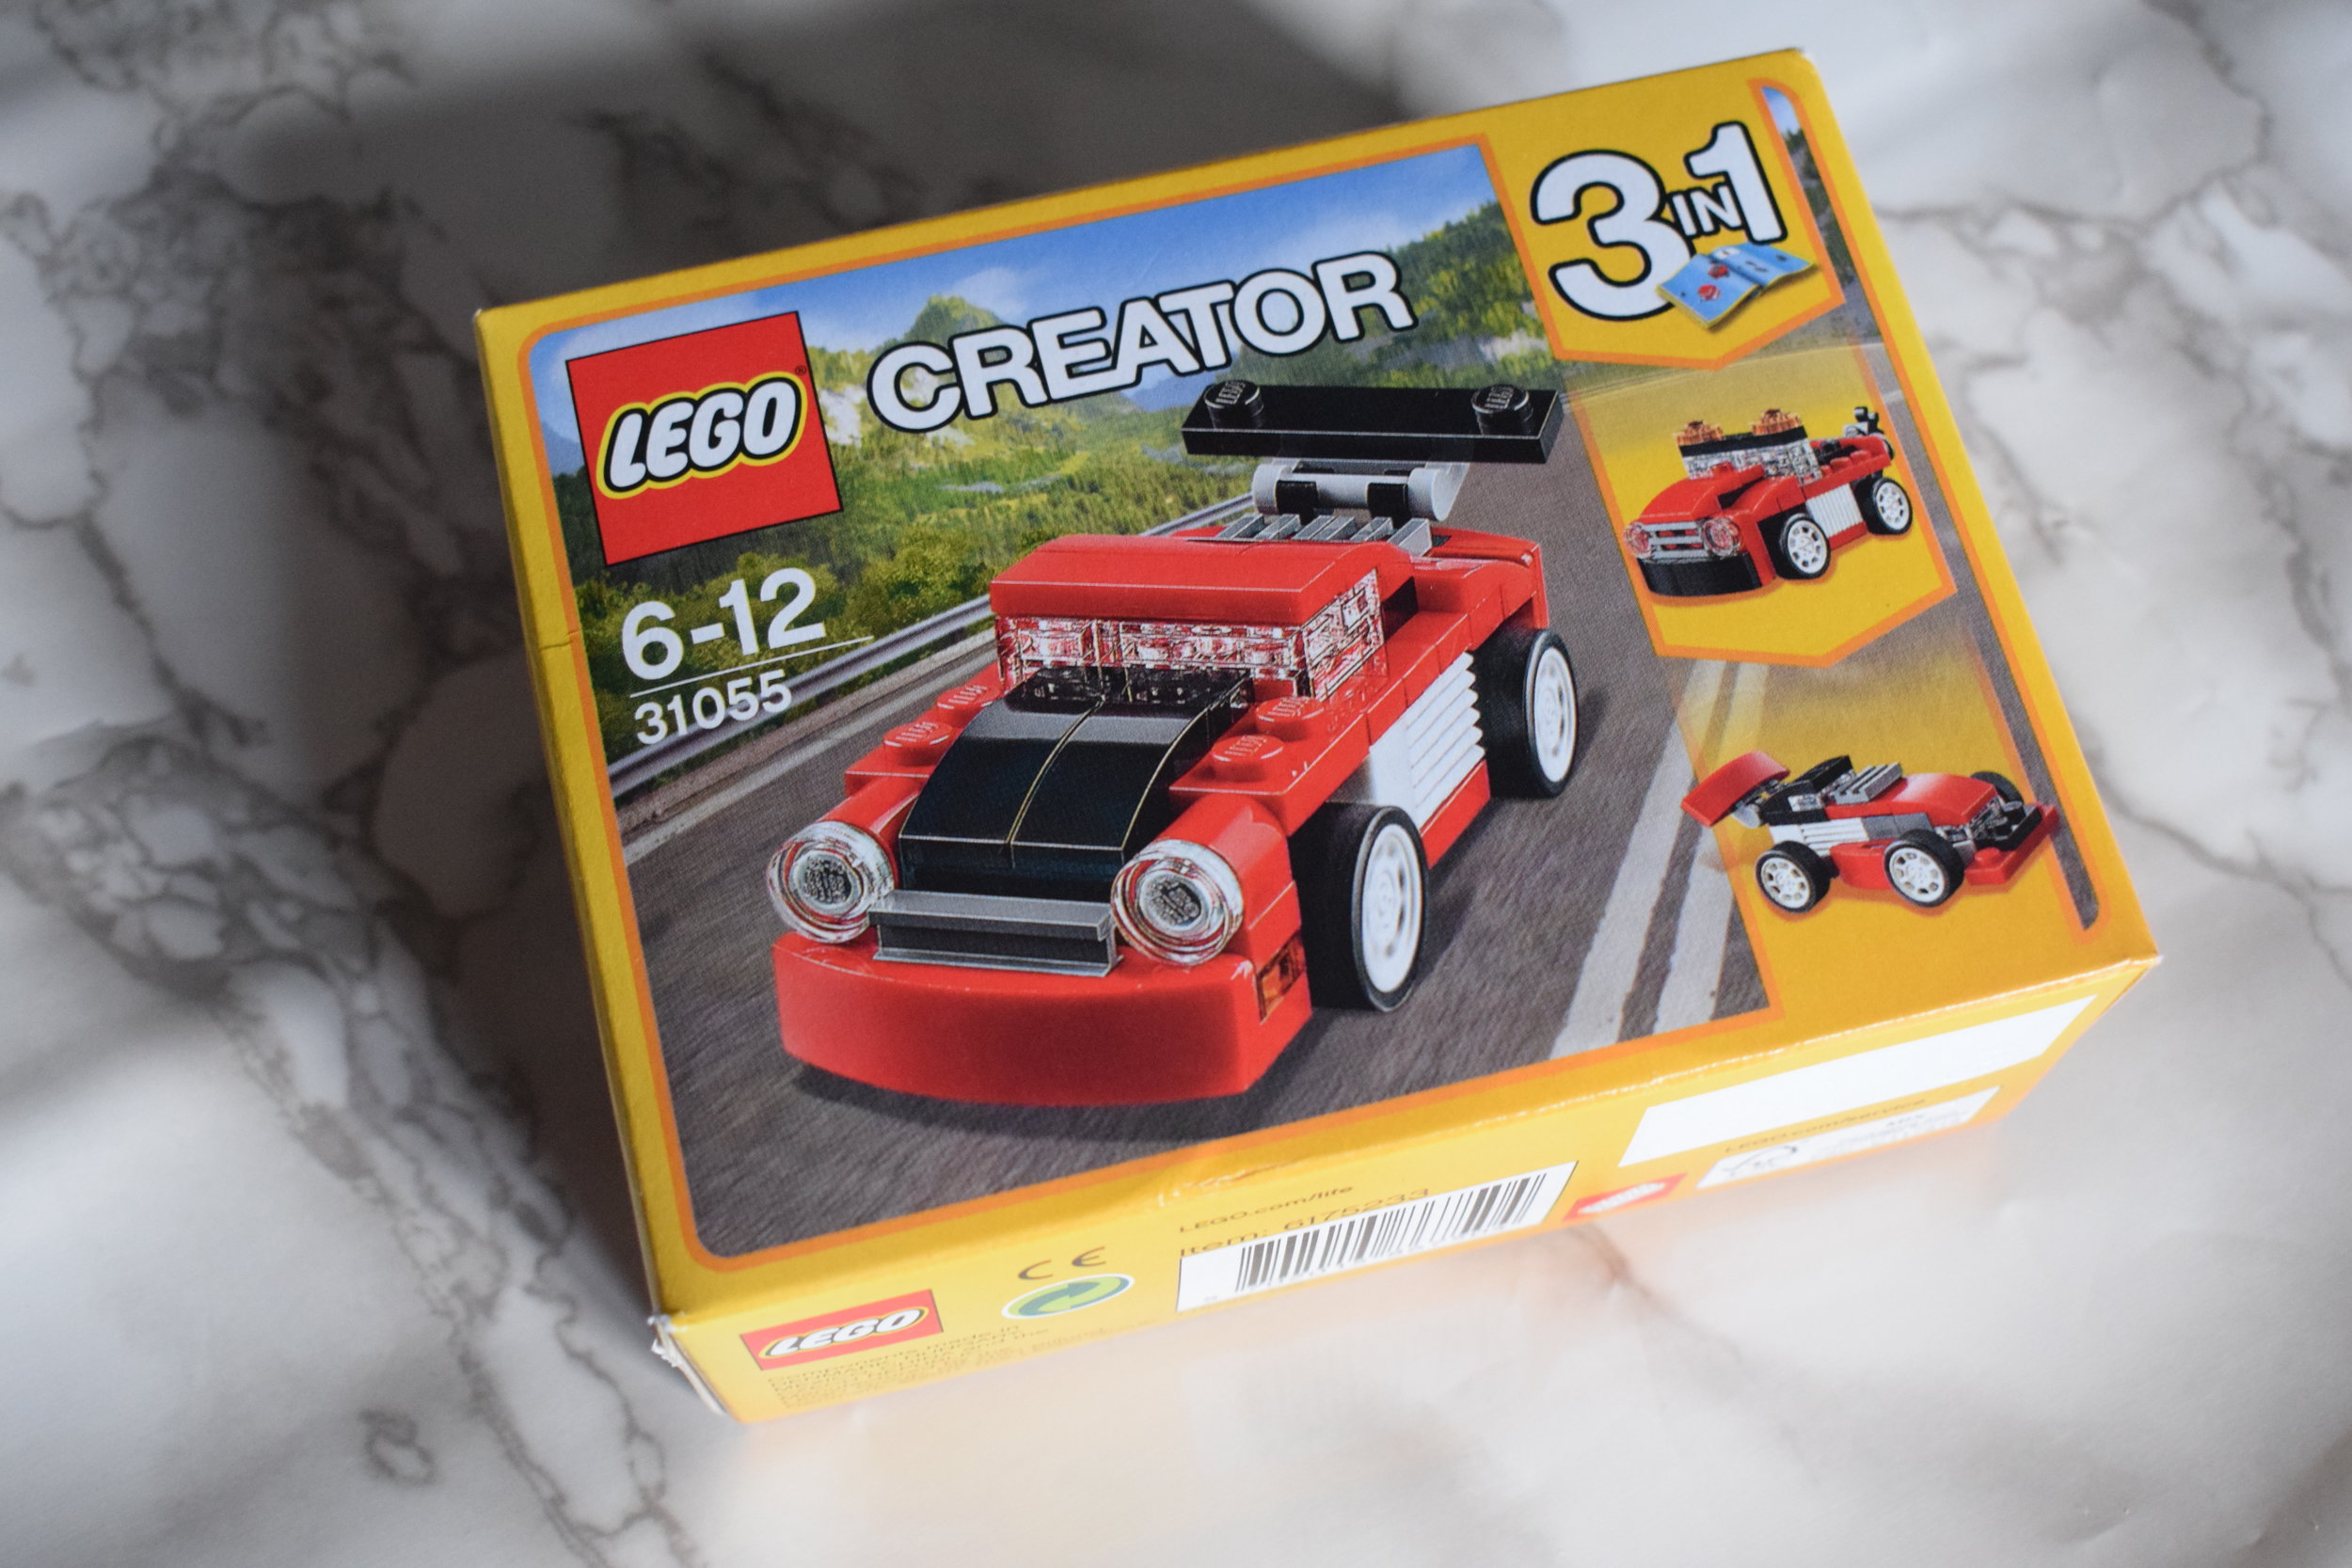 LEGO Creator 3 in 1 red vehicle